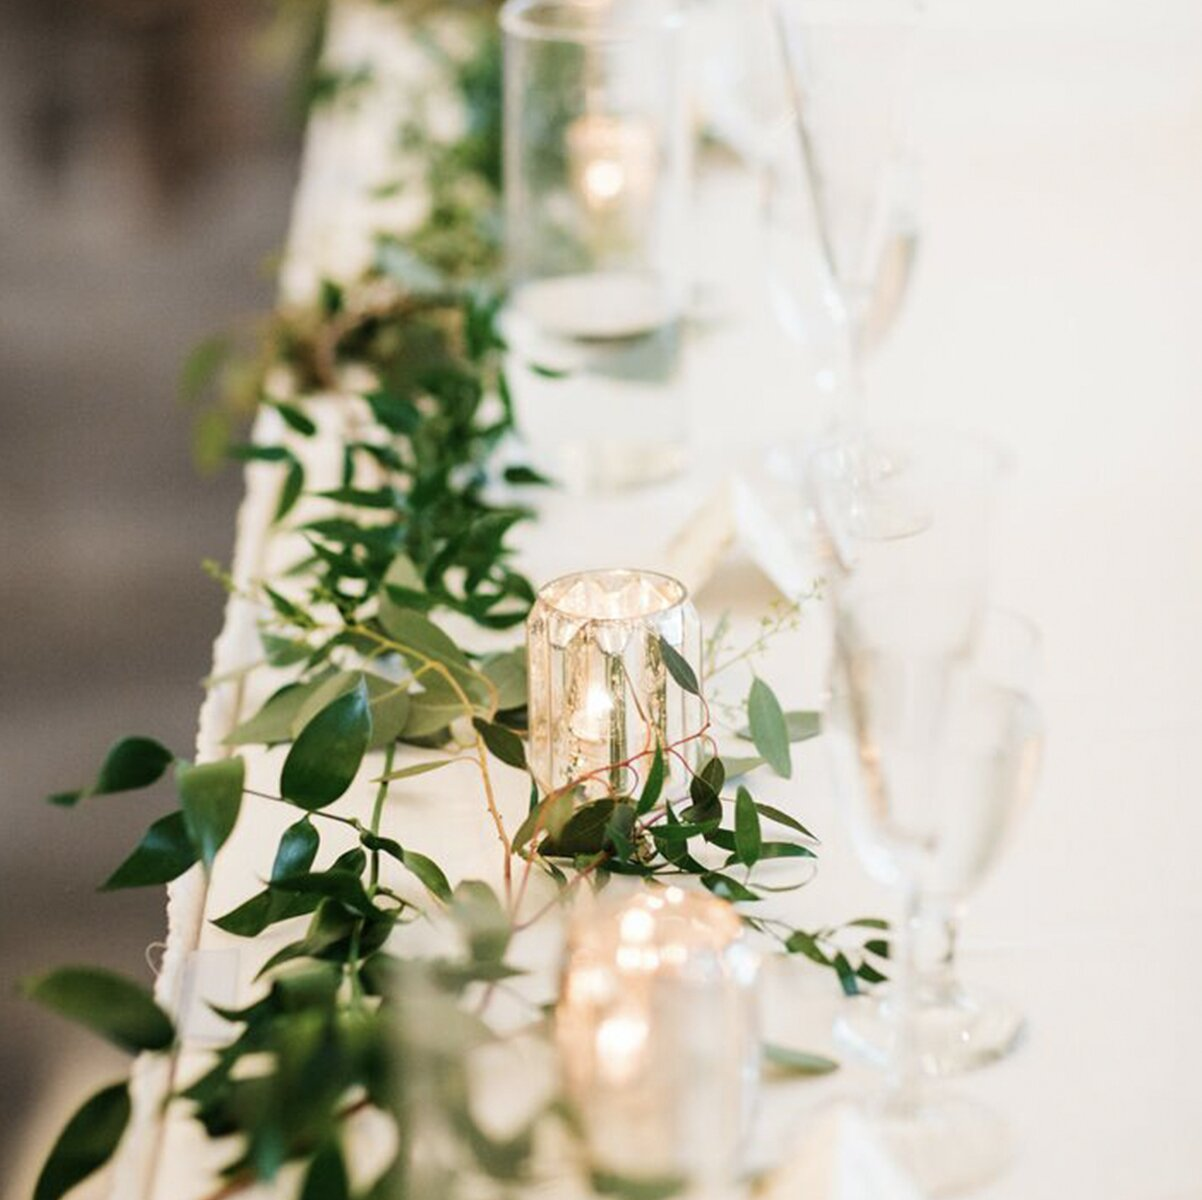 sydney-wedding-flowers-packages-affordable-price-foliage-garland-table